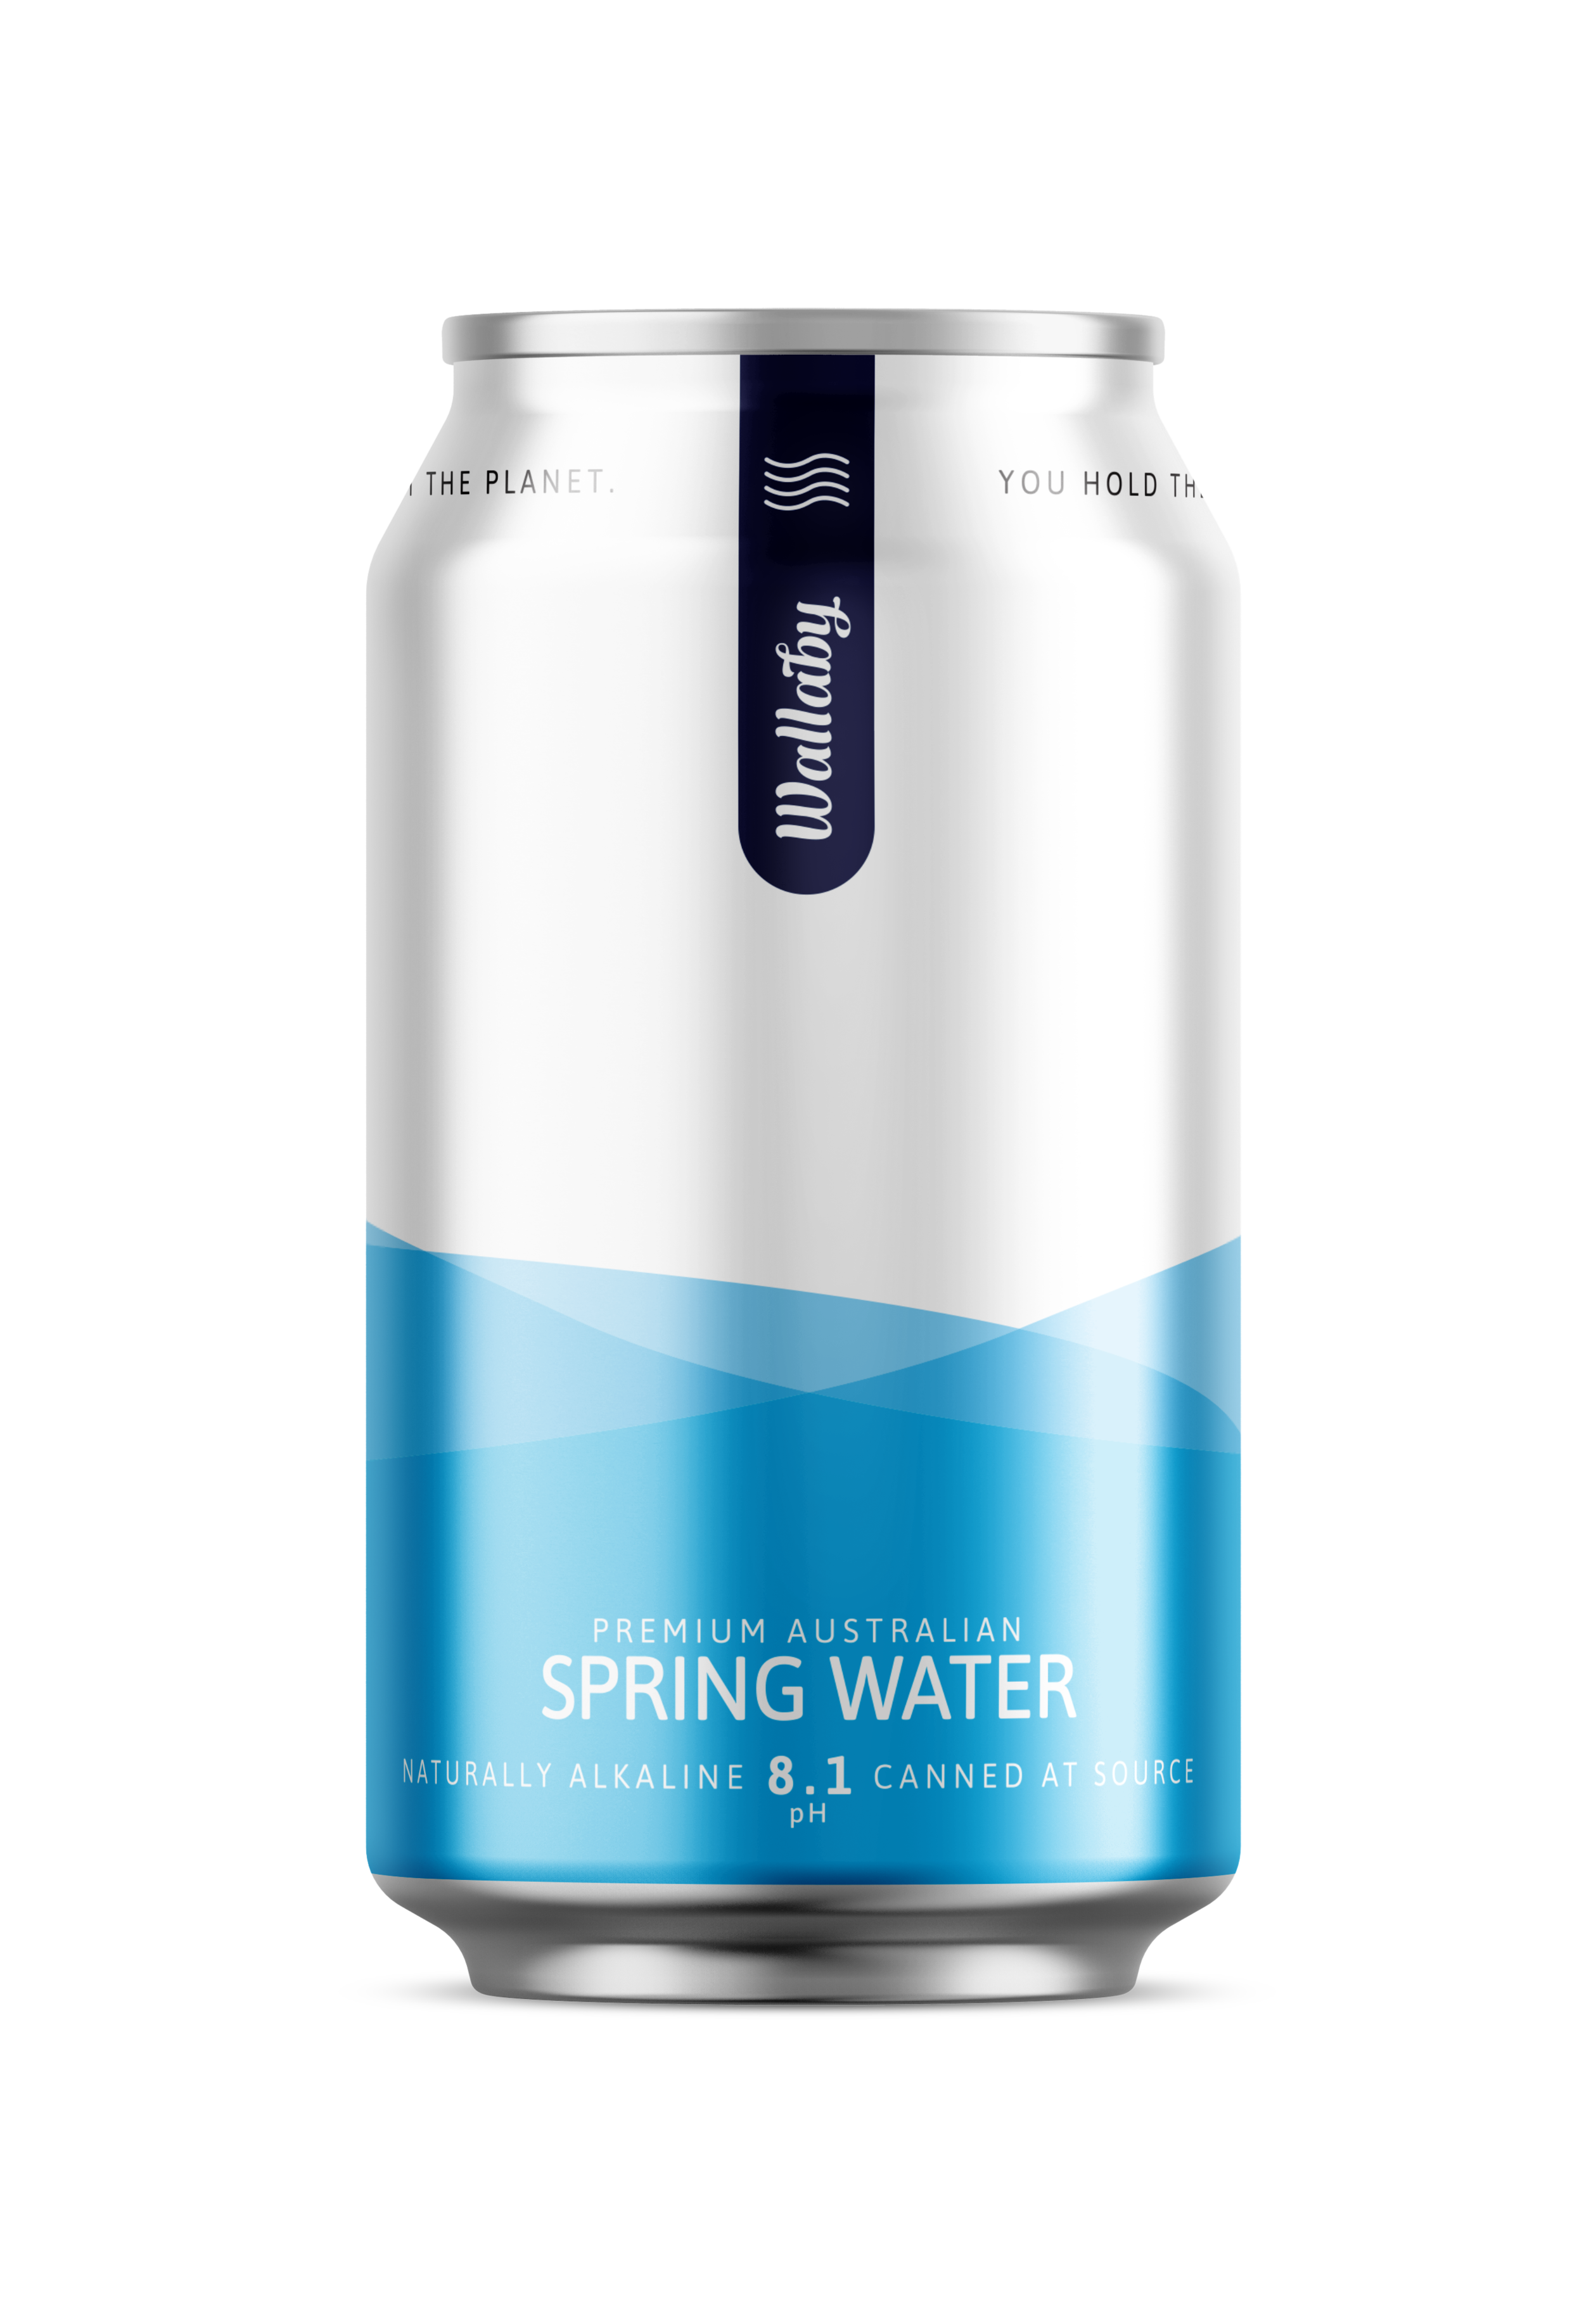 canned water, spring water can, water in cans, Australian spring water in cans, Australian water, canned spring water